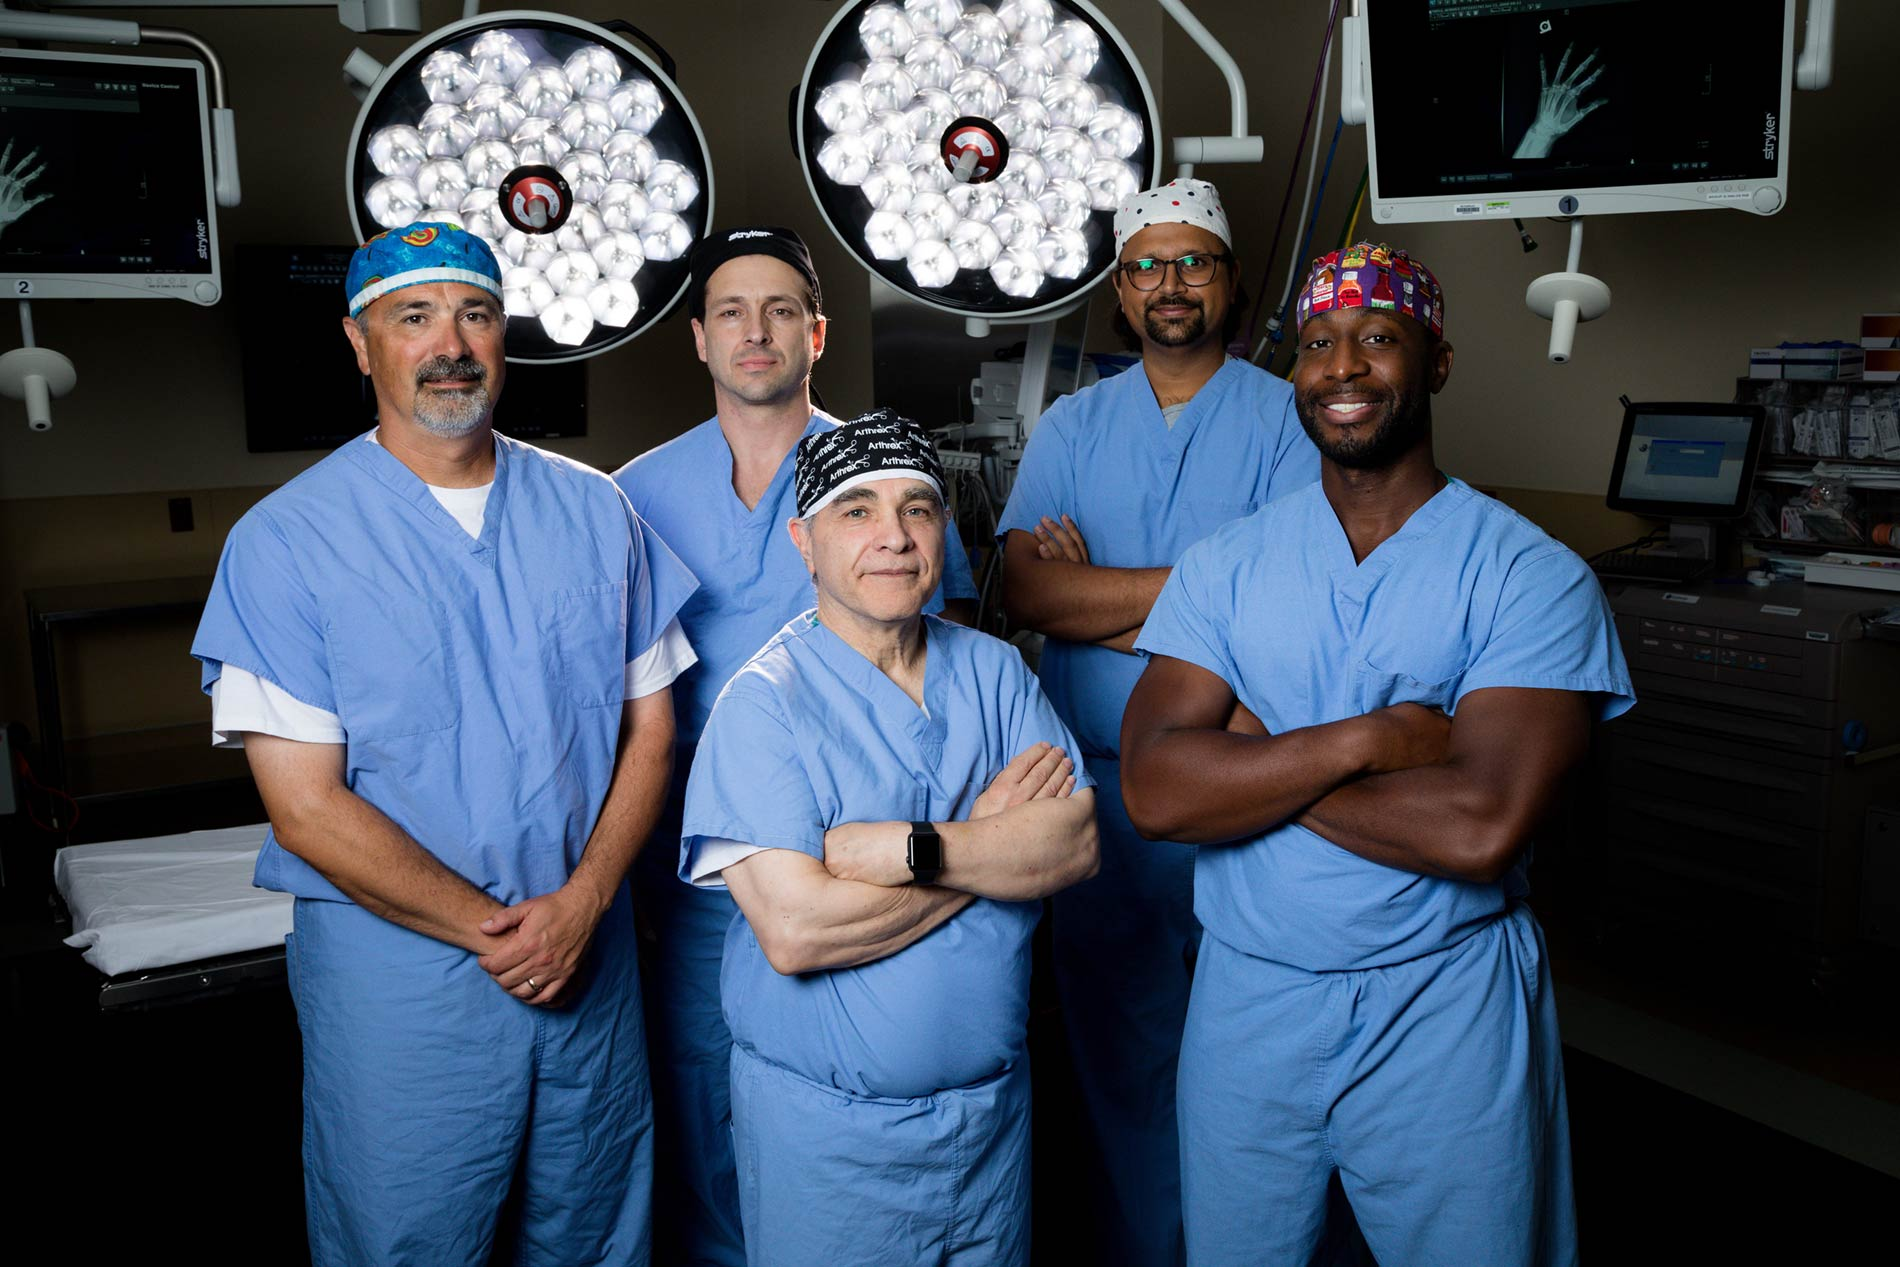 Meet the Surgeons of UCF Health